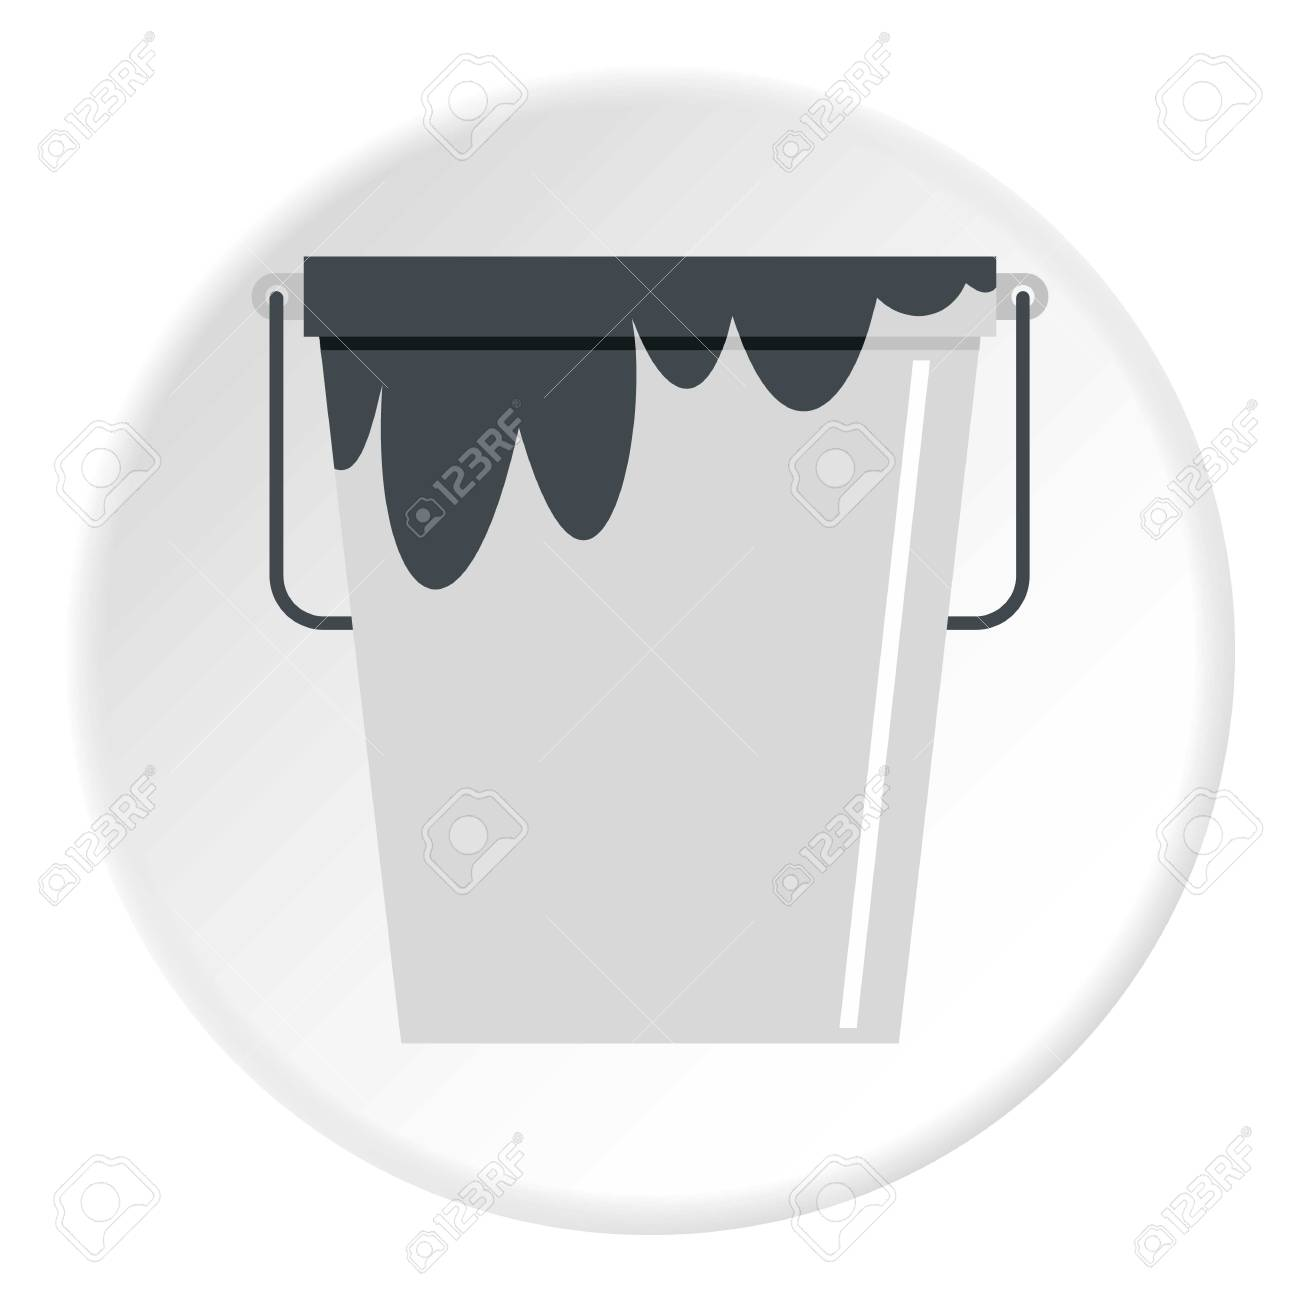 Bitumen emulsion in grey bucket icon in flat circle isolated vector illustration for web - 81305739